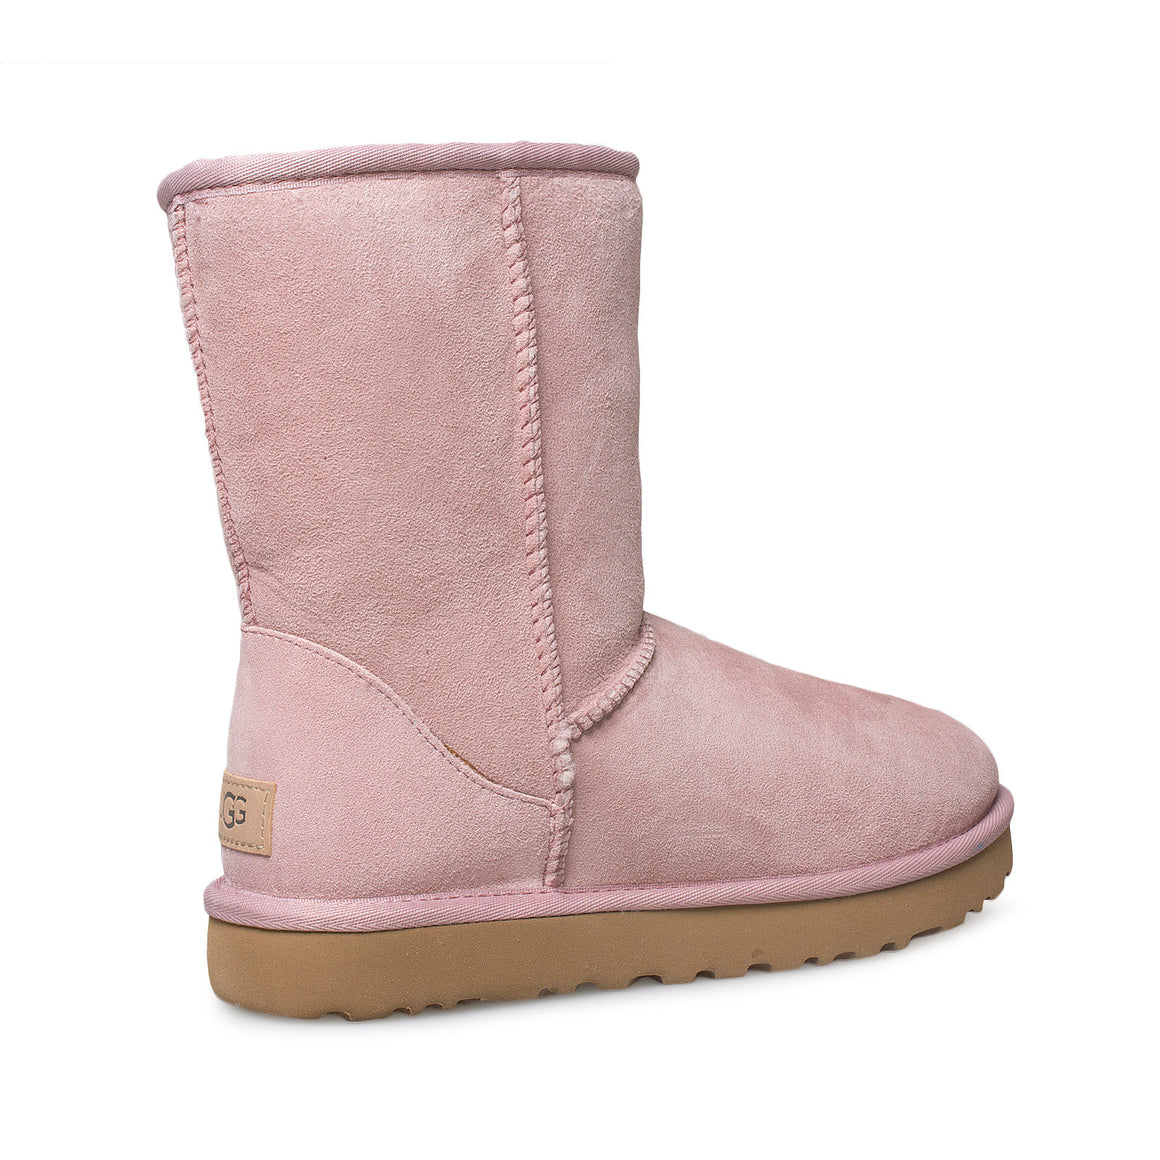 UGG Classic Short II Pink Crystal Boots - Women's